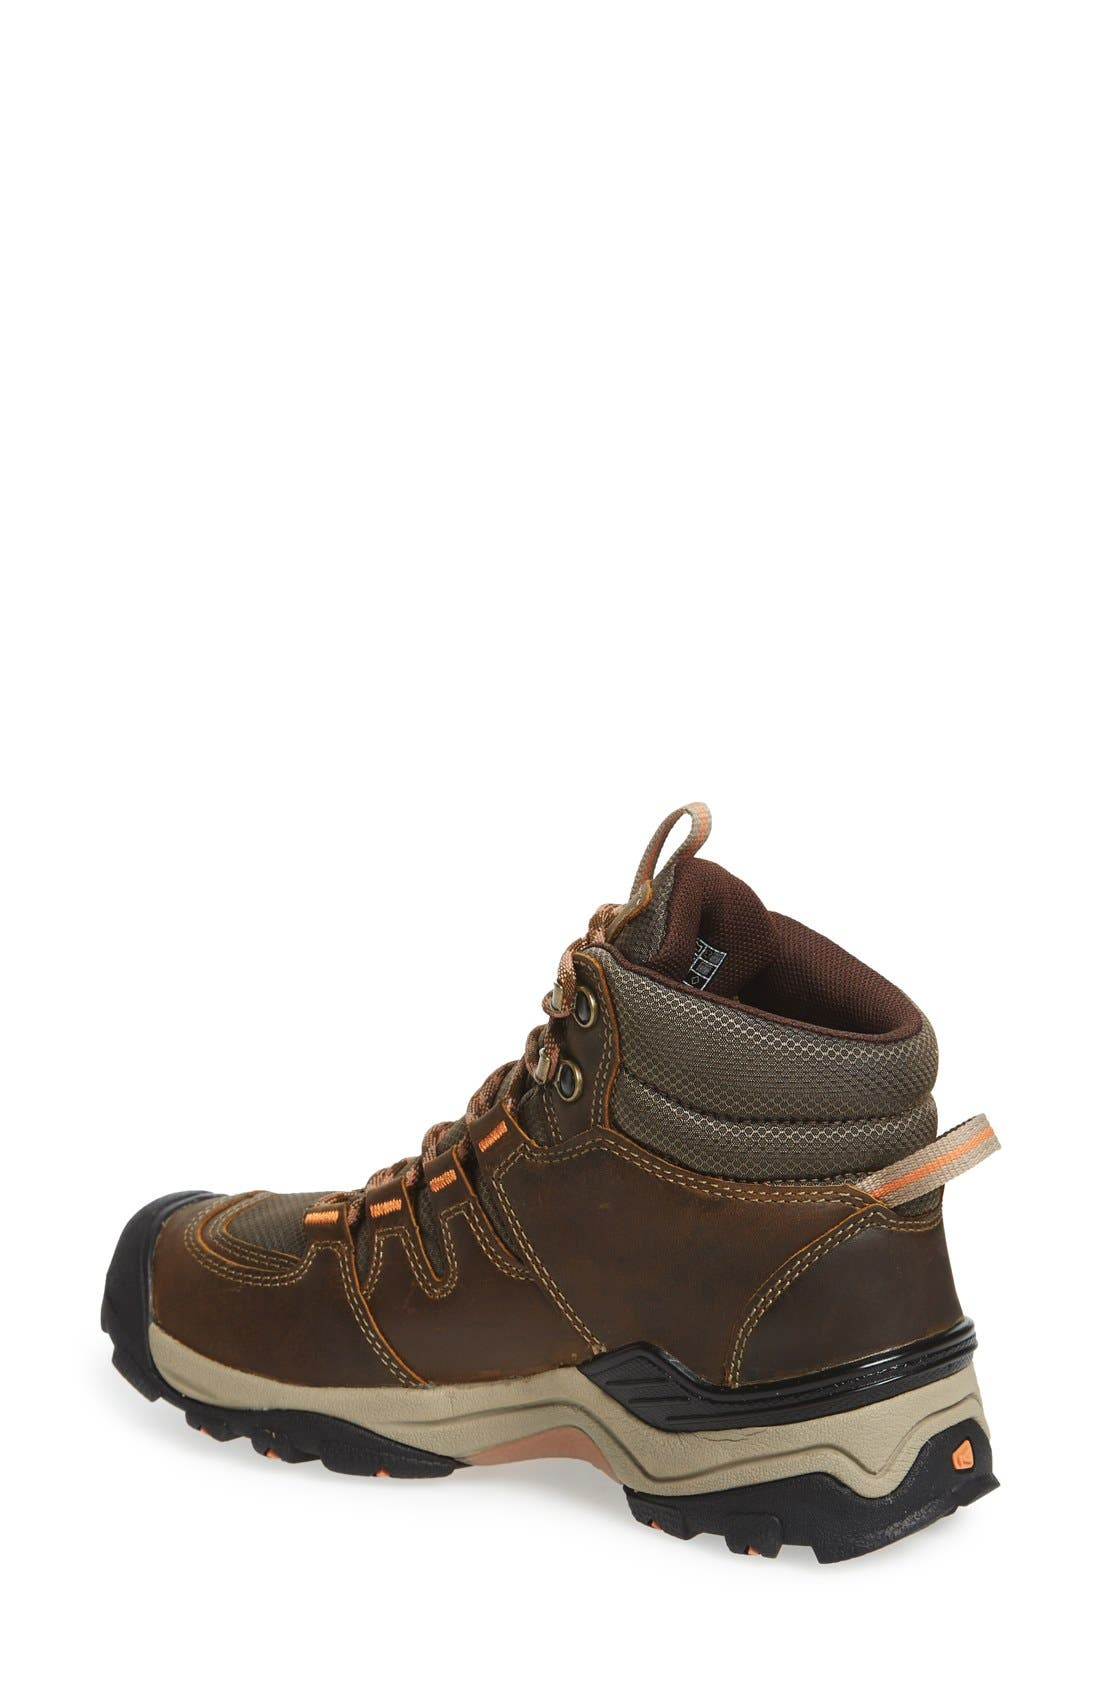 Alternate Image 2  - Keen Gypsum II Mid Waterproof Hiking Boot (Women)